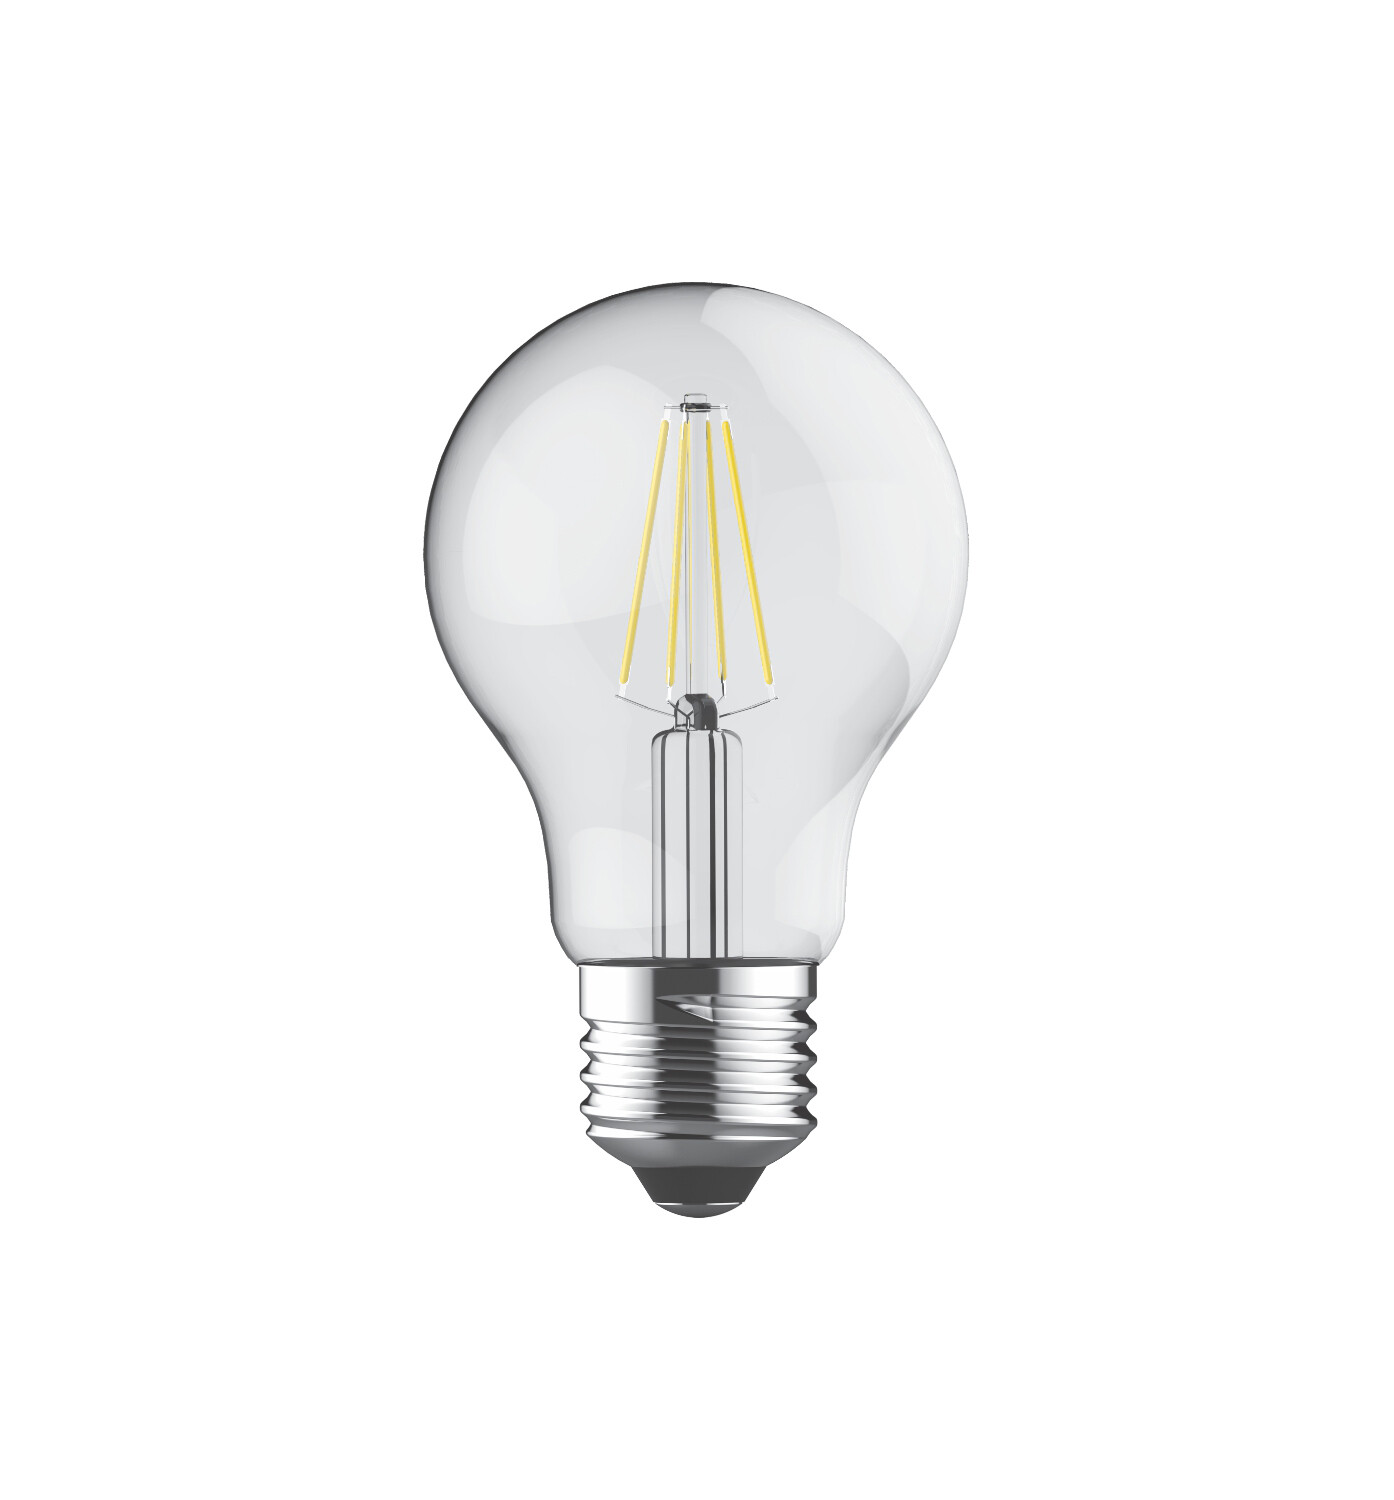 E27-LED filament-A60 6.5 Watt 2700K (warm white) 806lm clear DIMMABLE